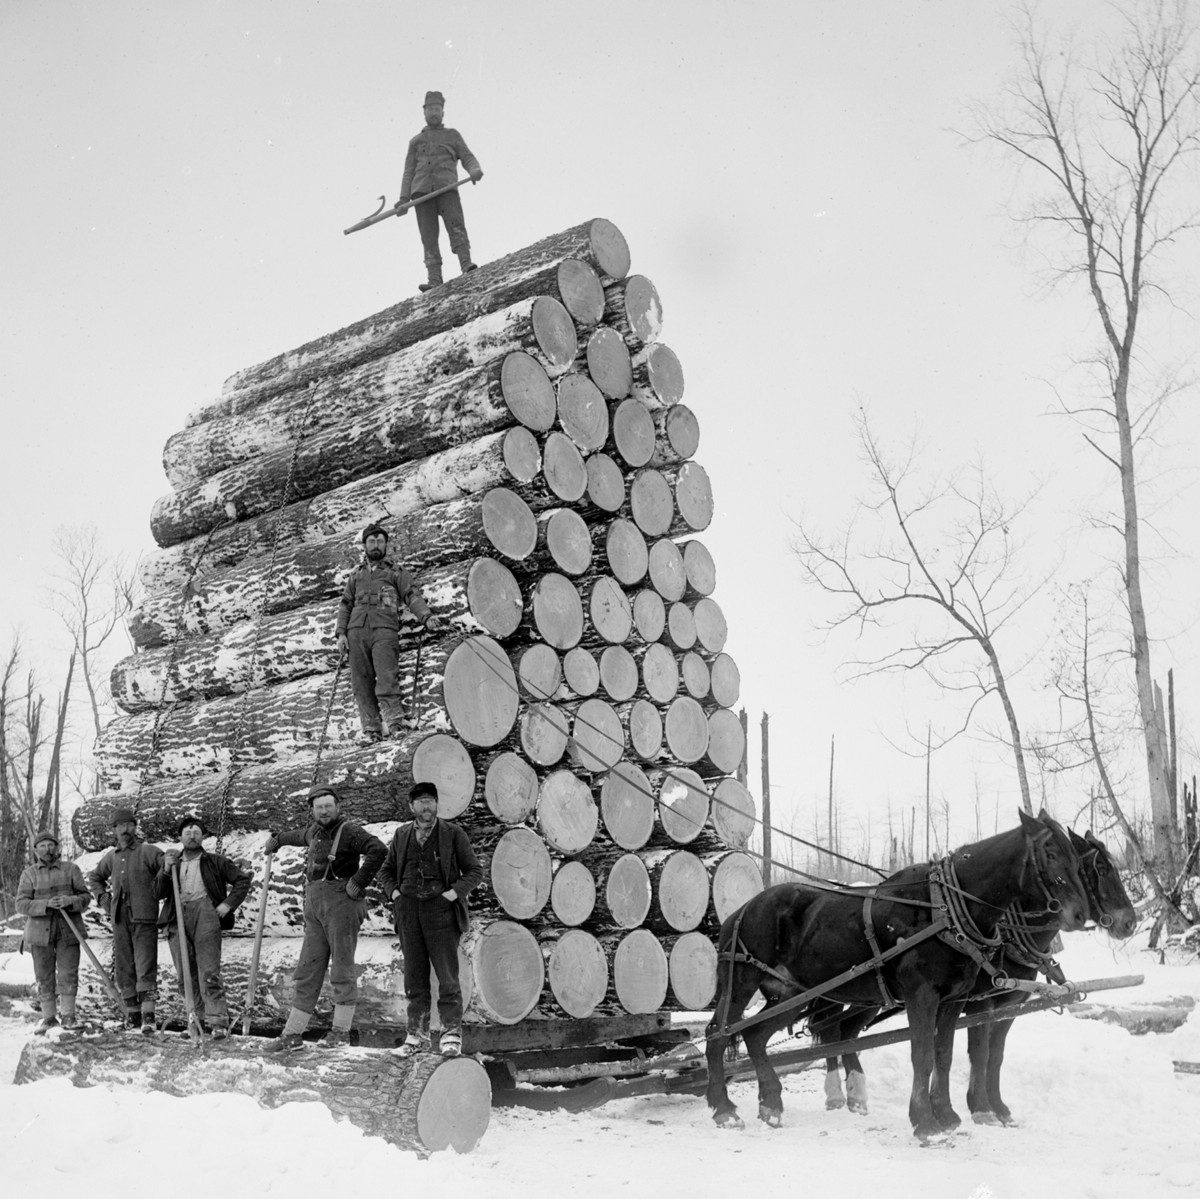 The first American settlers cut down millions of trees to deliberately engineer climate change